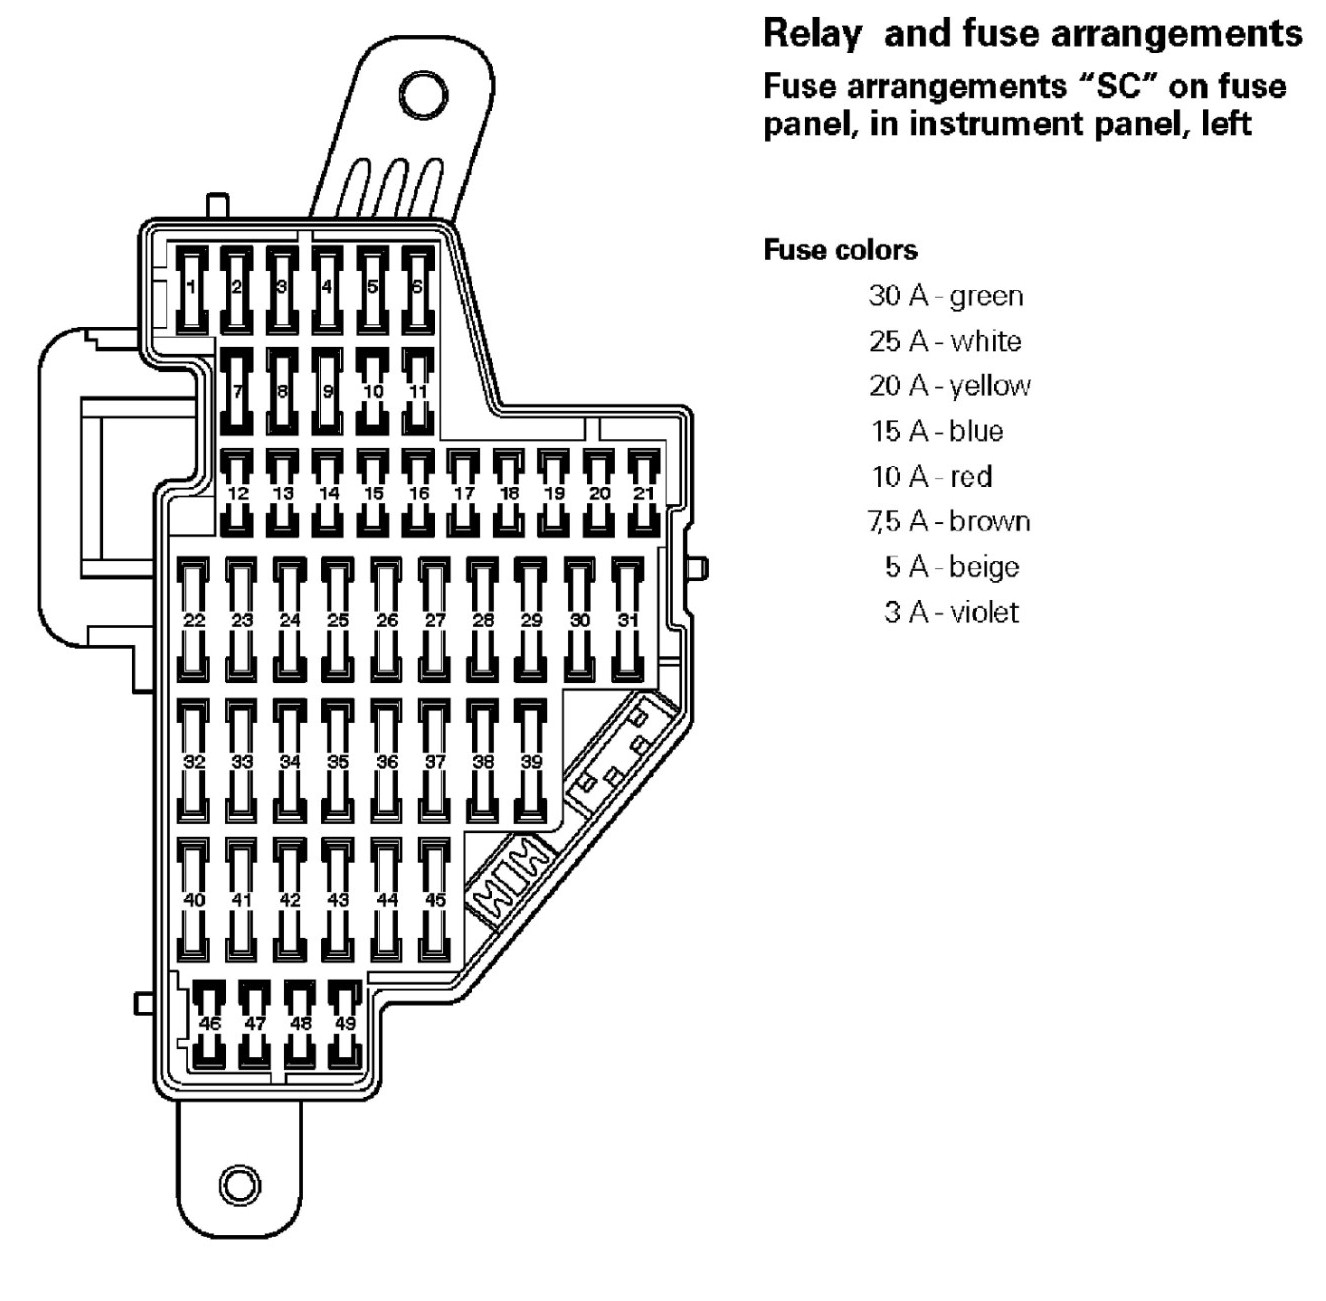 2007 Jetta Fuse Diagram - Wiring Diagram Server faith-speed -  faith-speed.ristoranteitredenari.it | 2007 Vw Rabbit Fuse Diagram |  | Ristorante I Tre Denari Manerbio